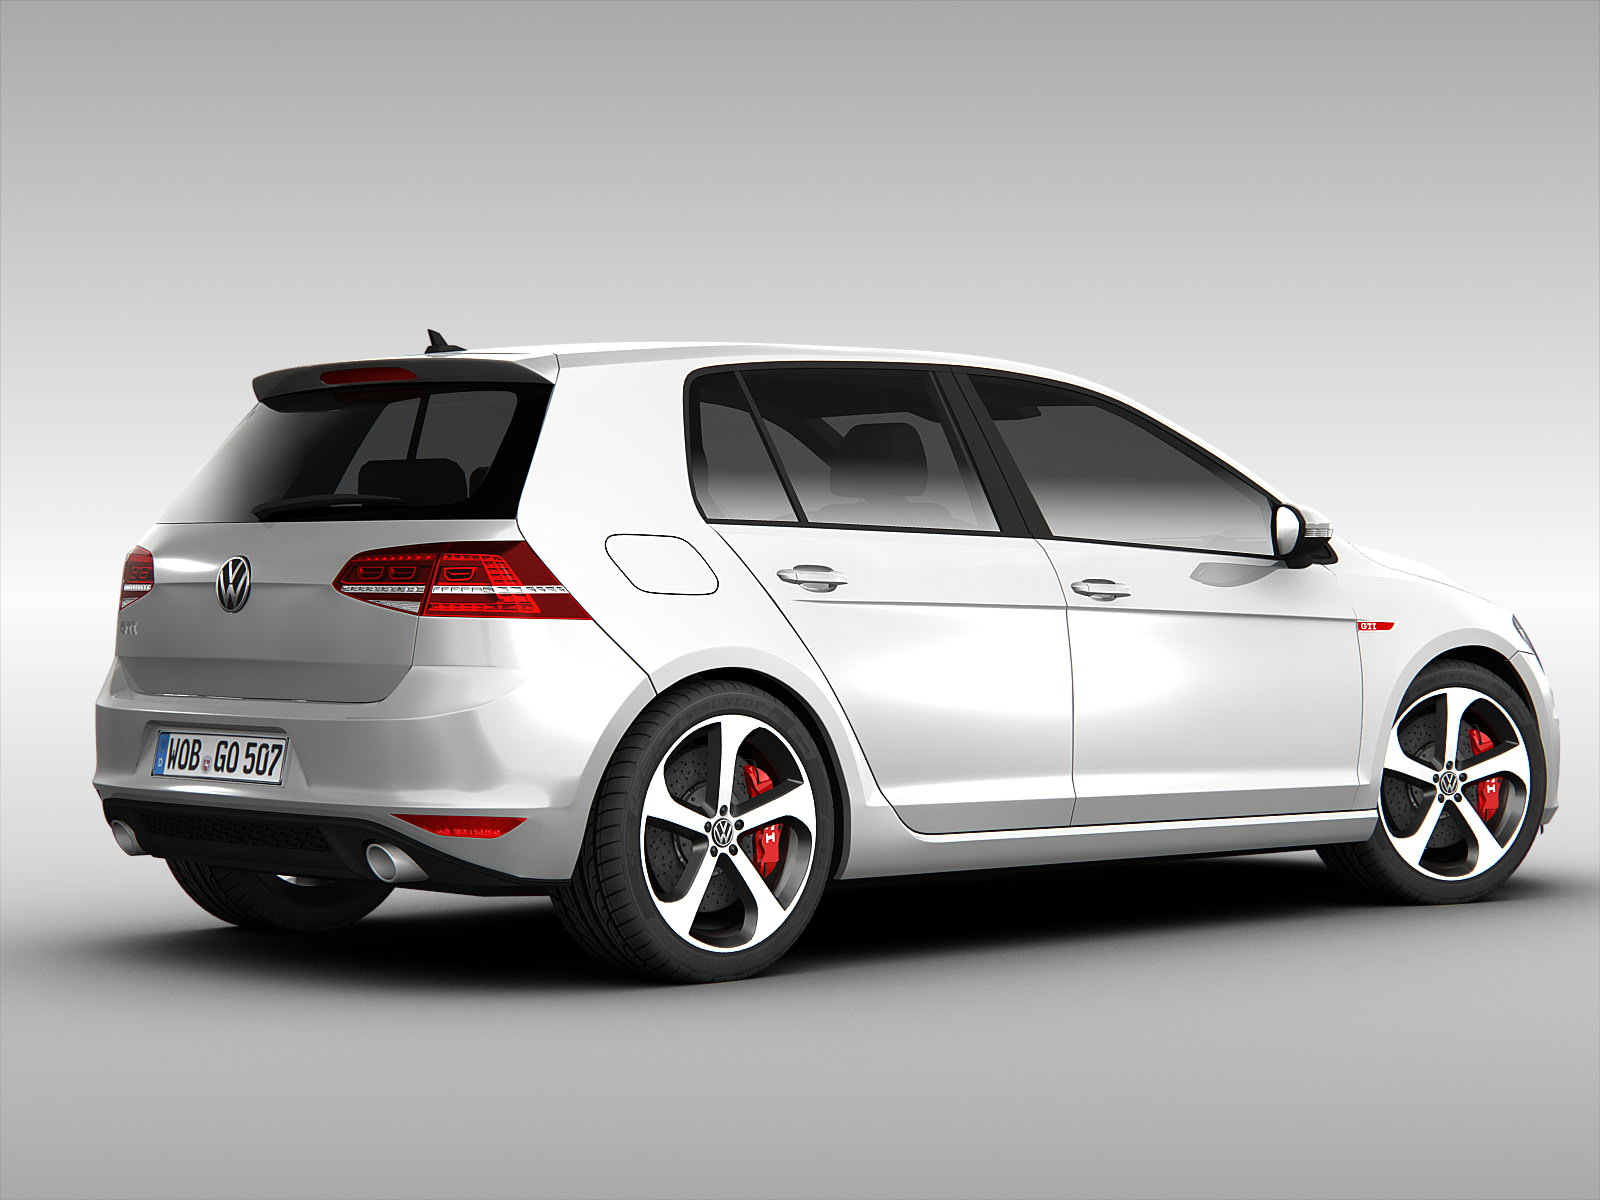 volkswagen golf gti vii 2014 3d model max obj 3ds fbx. Black Bedroom Furniture Sets. Home Design Ideas